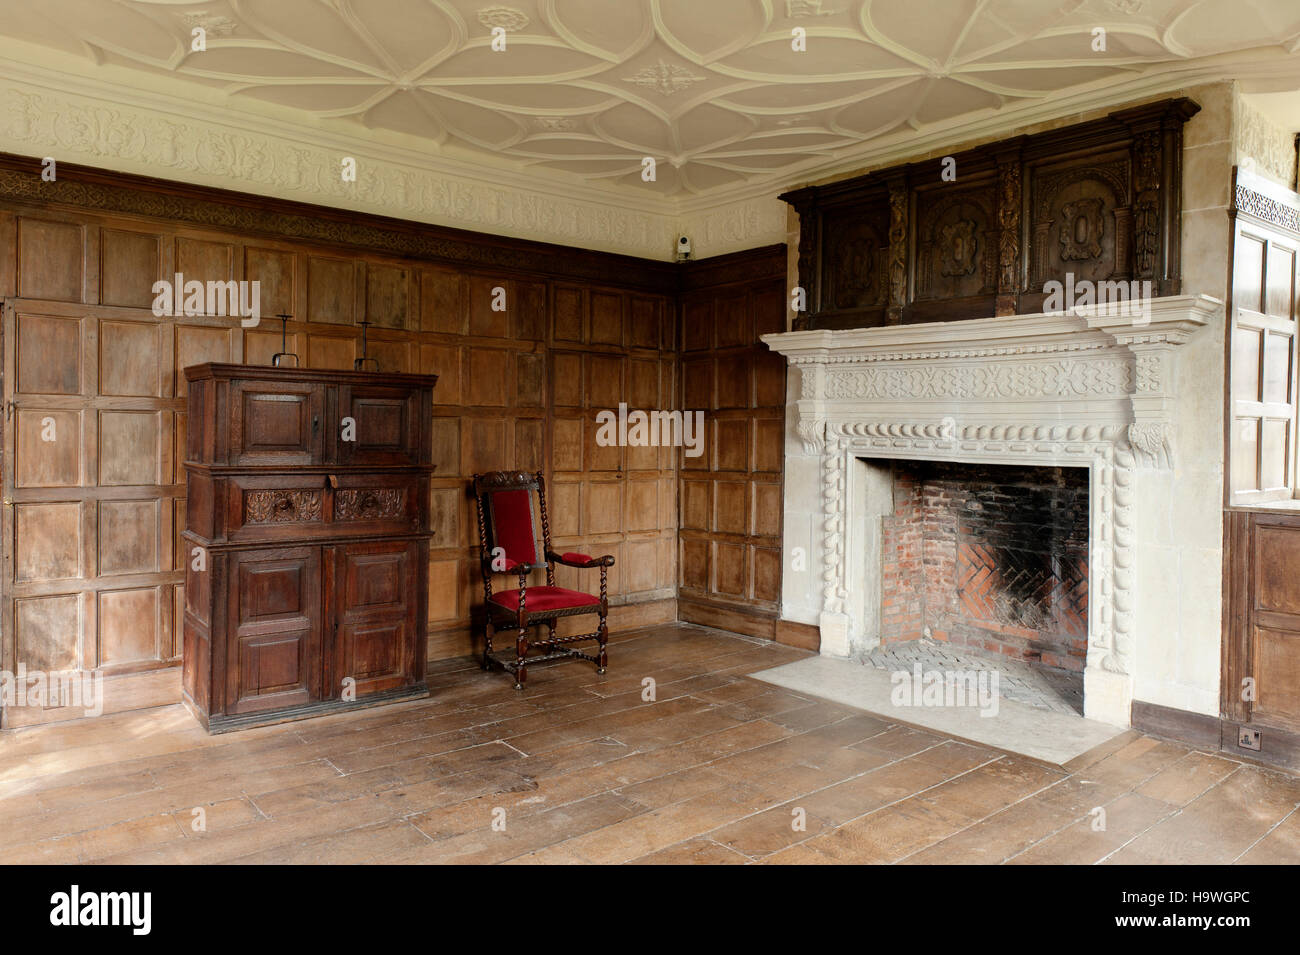 The South Bedroom at Avebury Manor, Wiltshire, - Stock Image